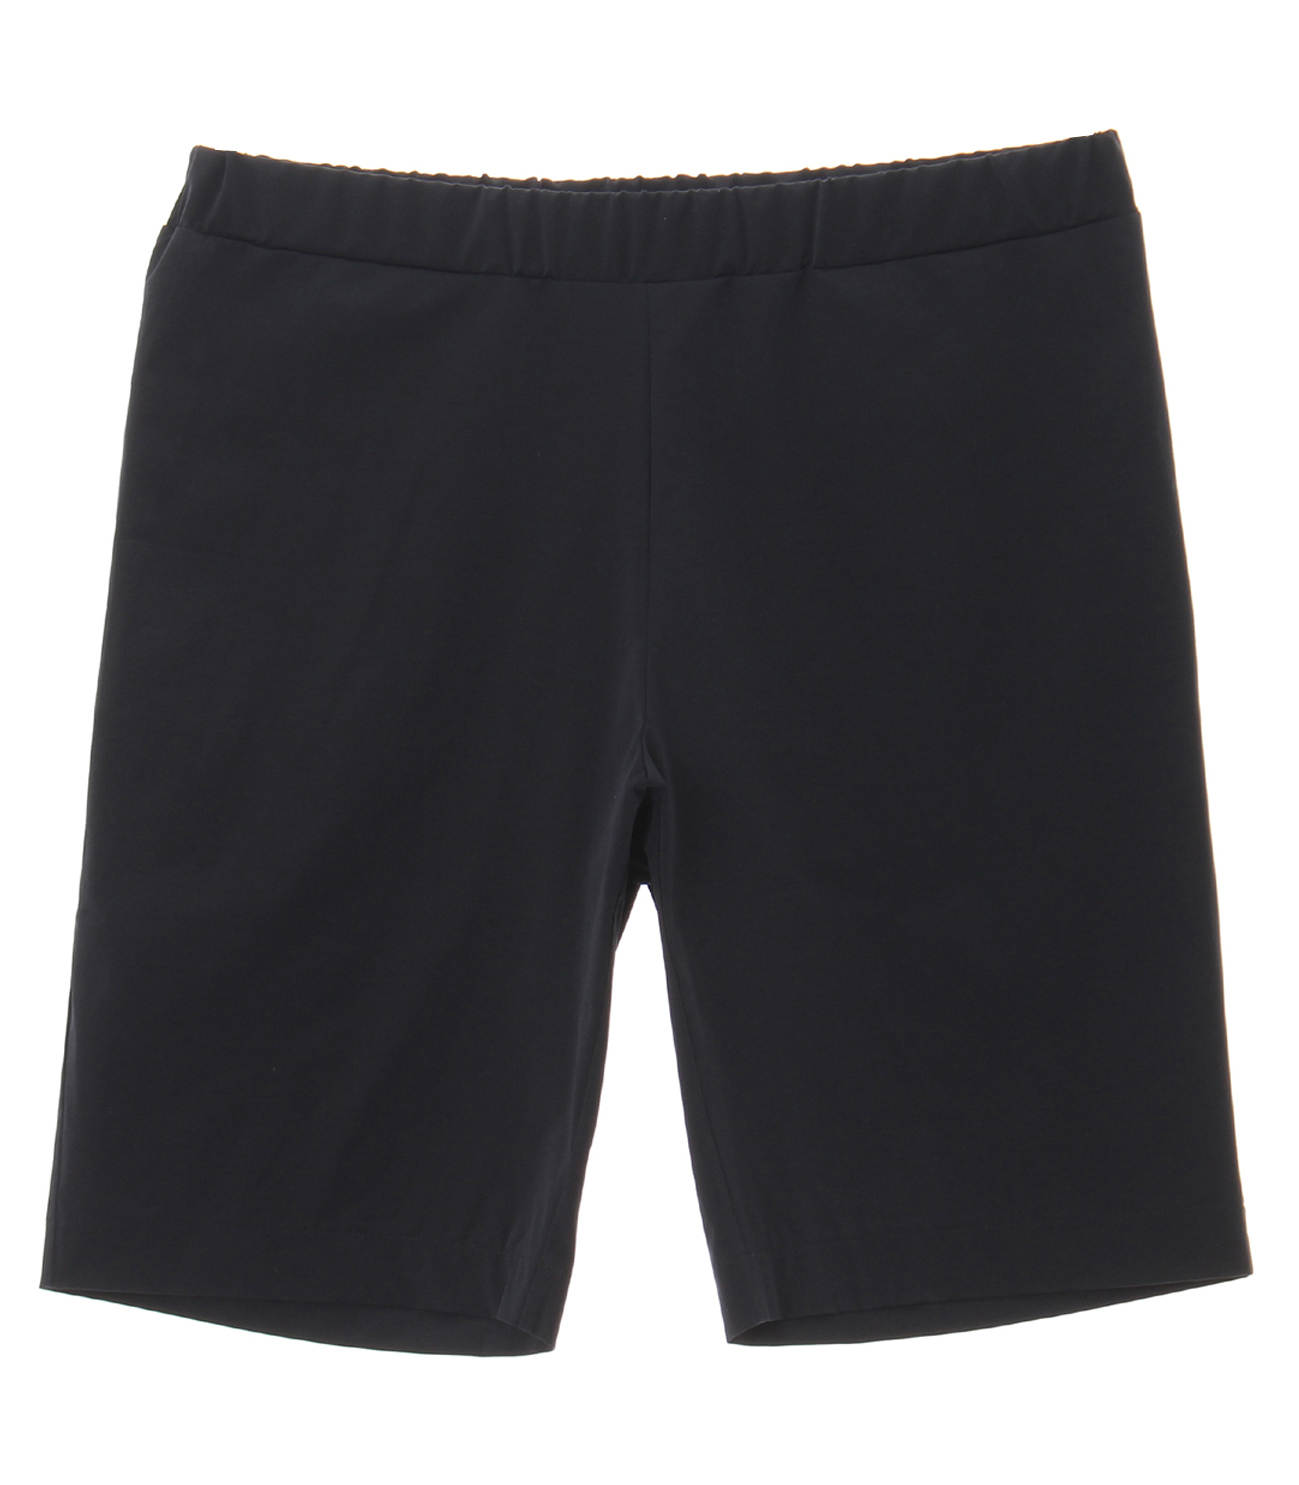 Men's travel line sharlingshorts 詳細画像 navy 1